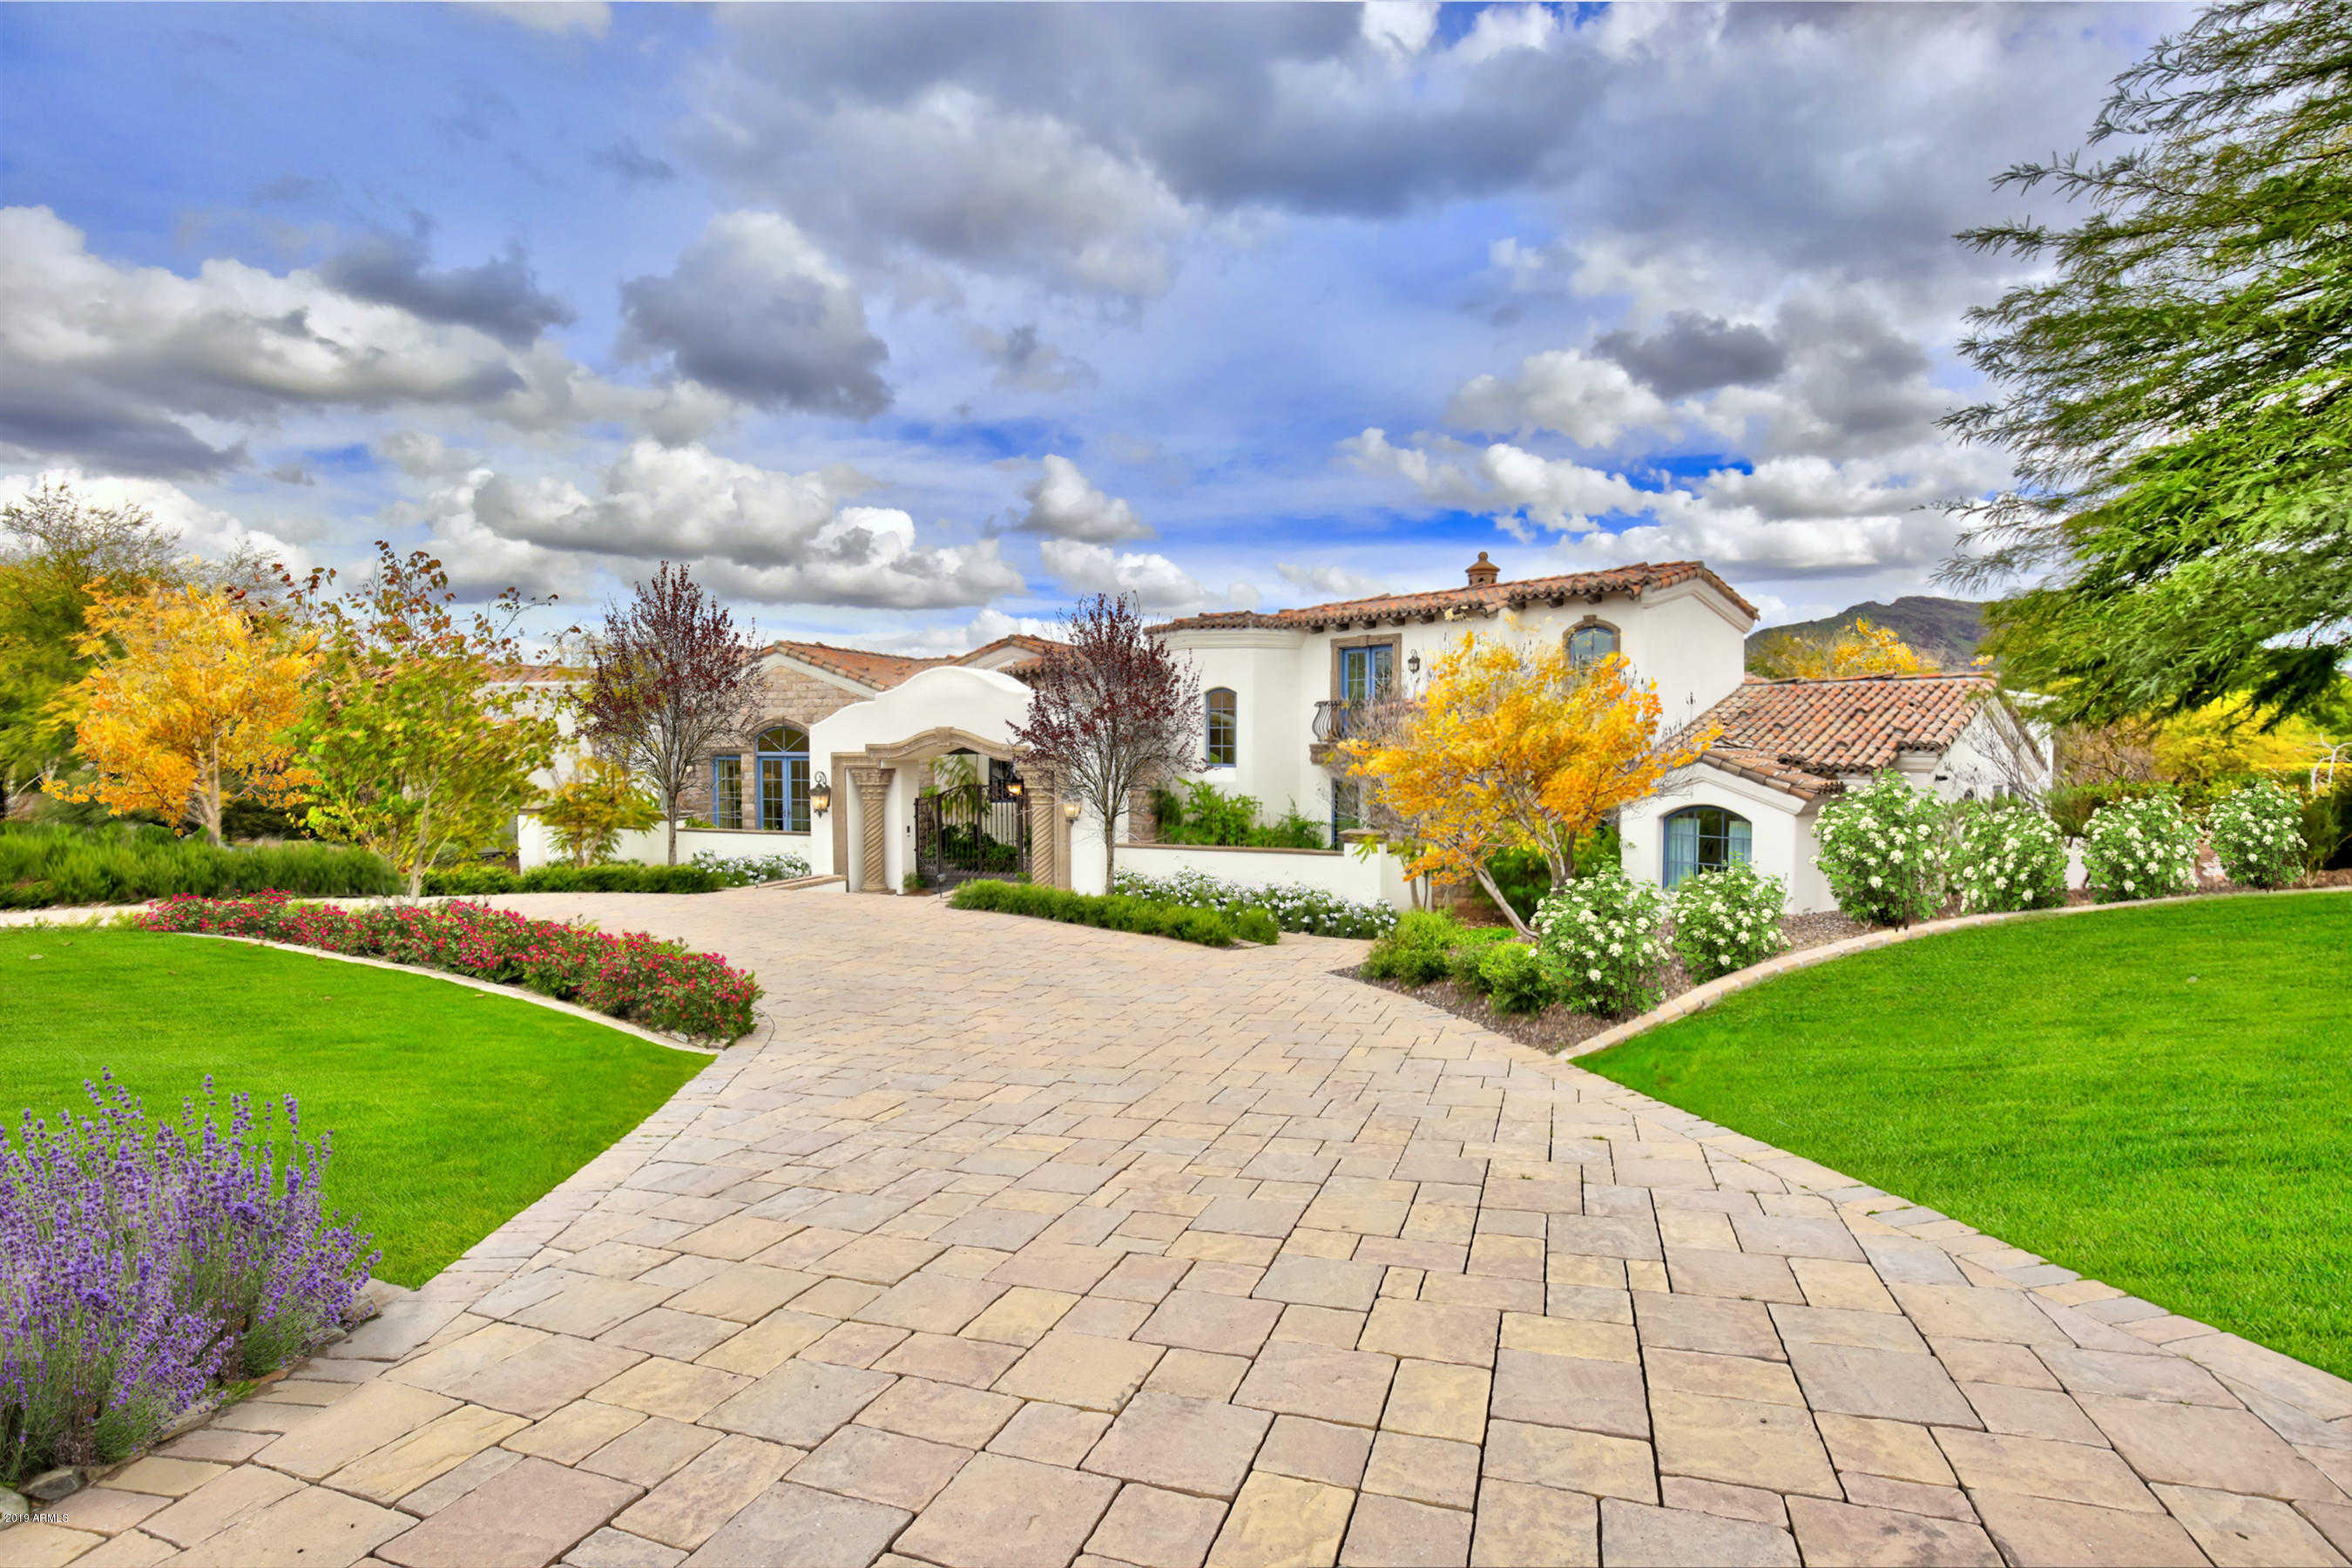 $3,450,000 - 5Br/6Ba - Home for Sale in Collice Portnoff Estates Amd, Paradise Valley